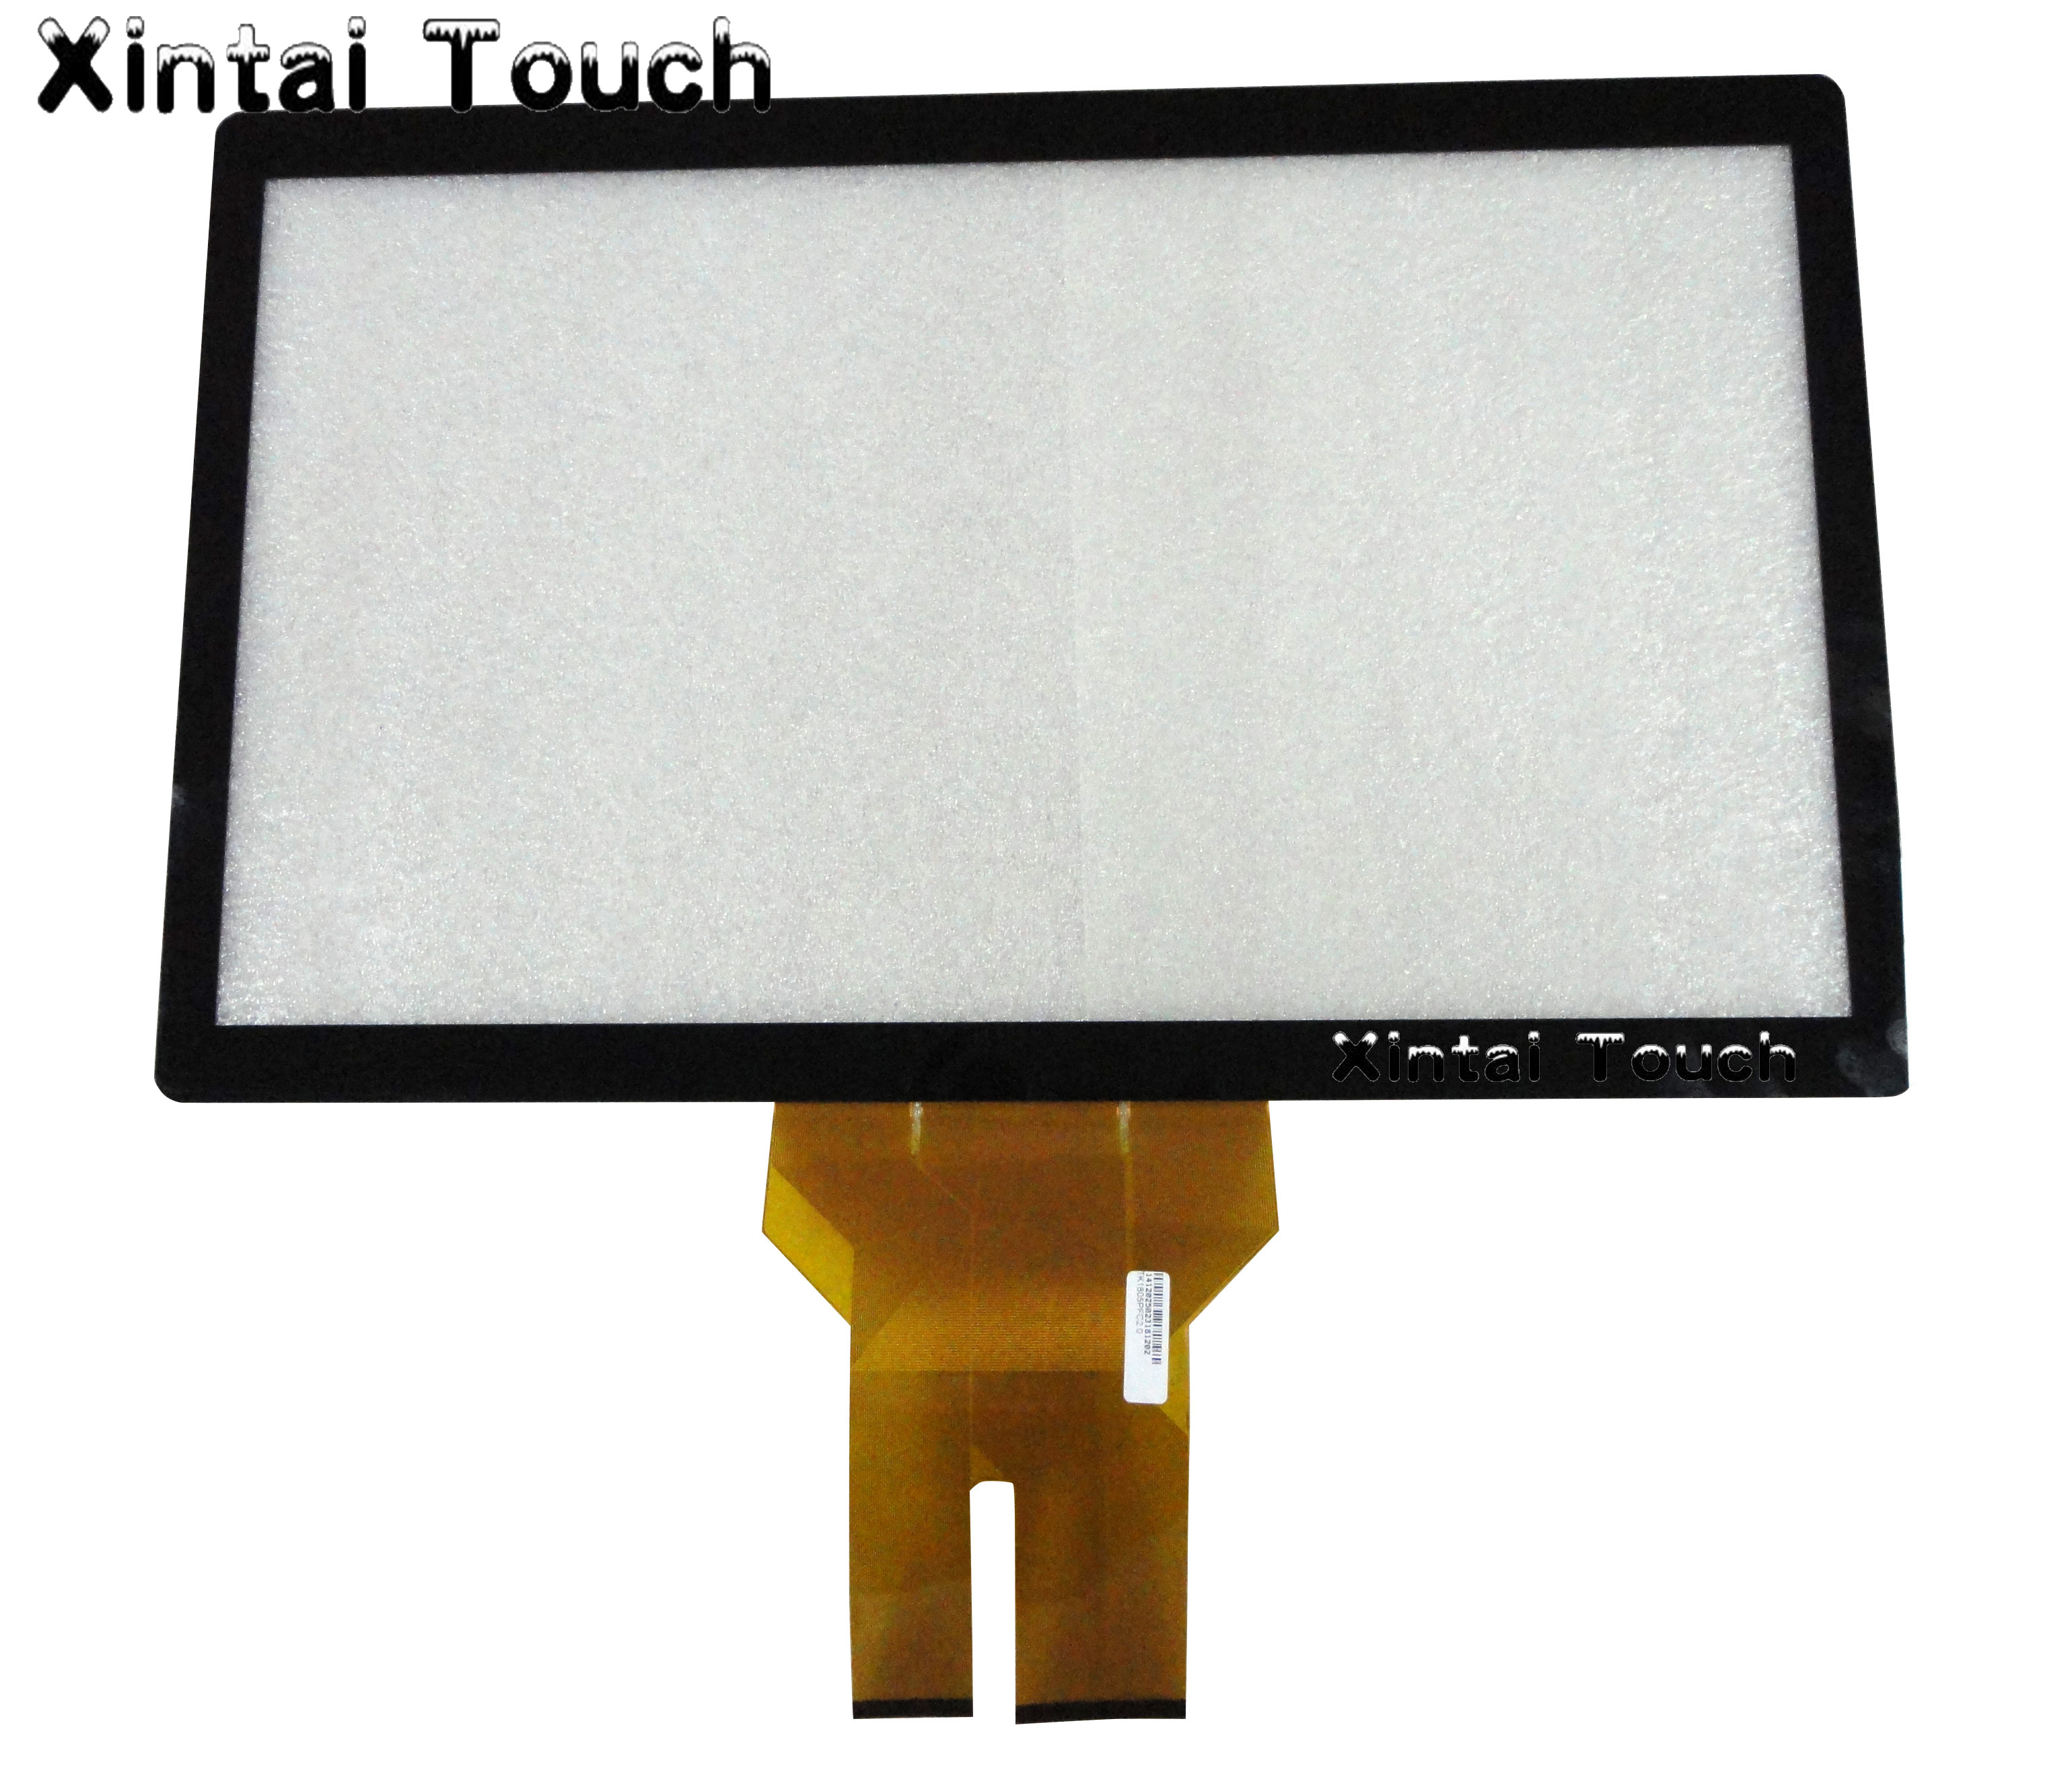 18.5 inch cheap Multi capacitive touch screen with glass/ capacitive touch screen overlay panel kit for touch table, kiosk etc